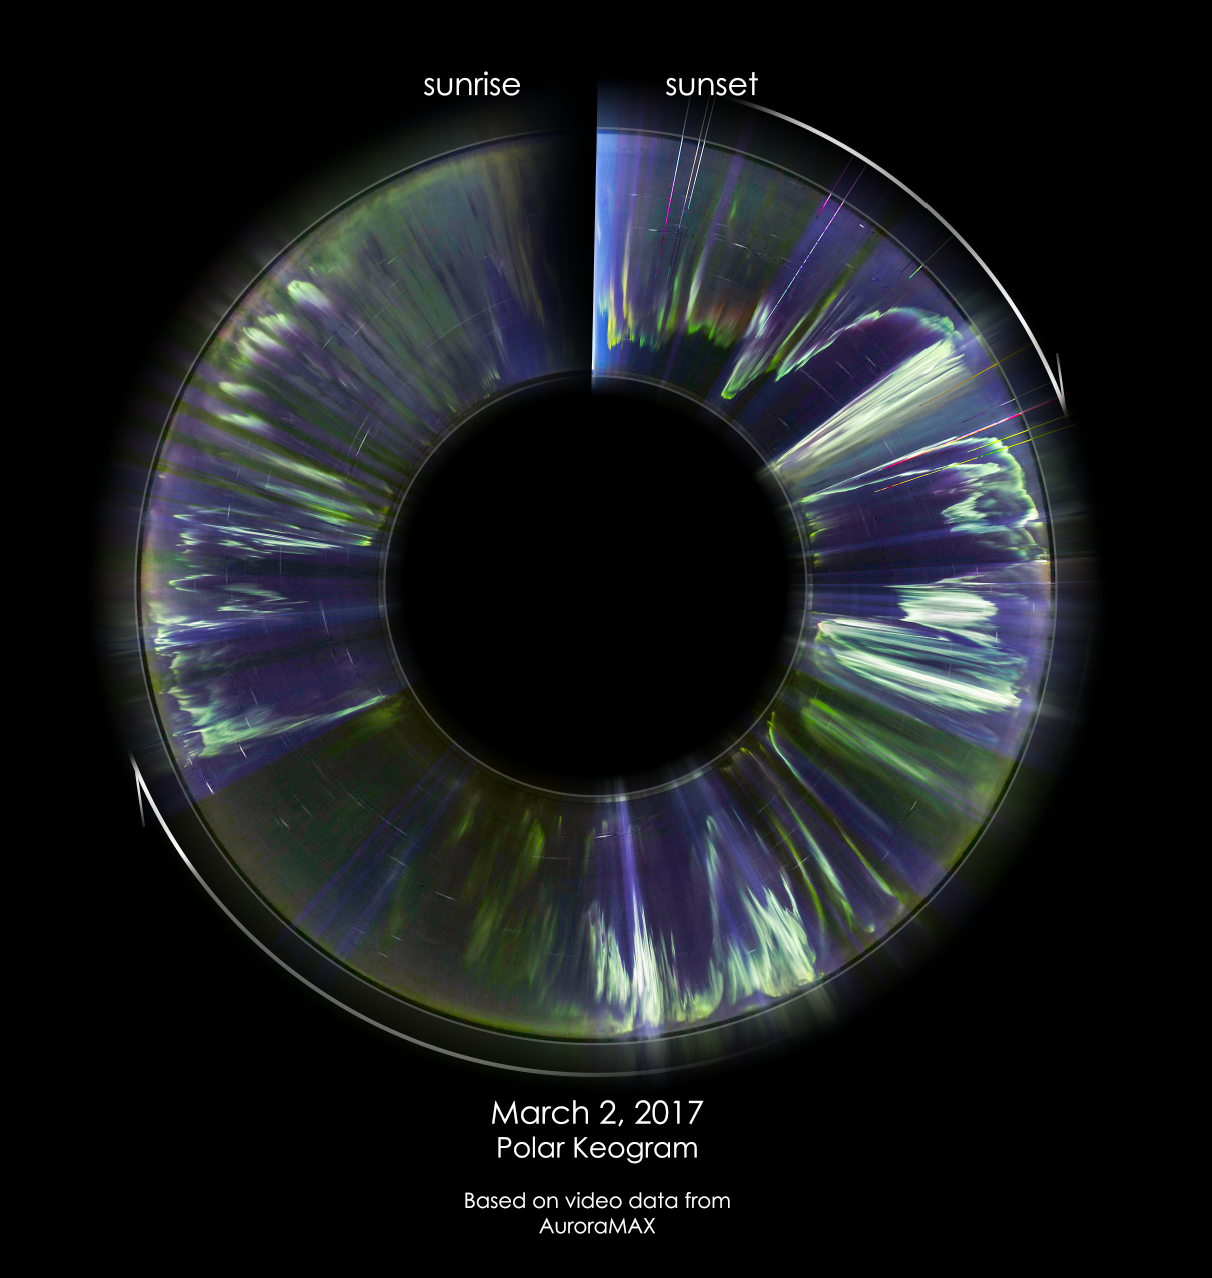 keogram of aurora activity reprojected in polar coordinates looking like the iris of an eye